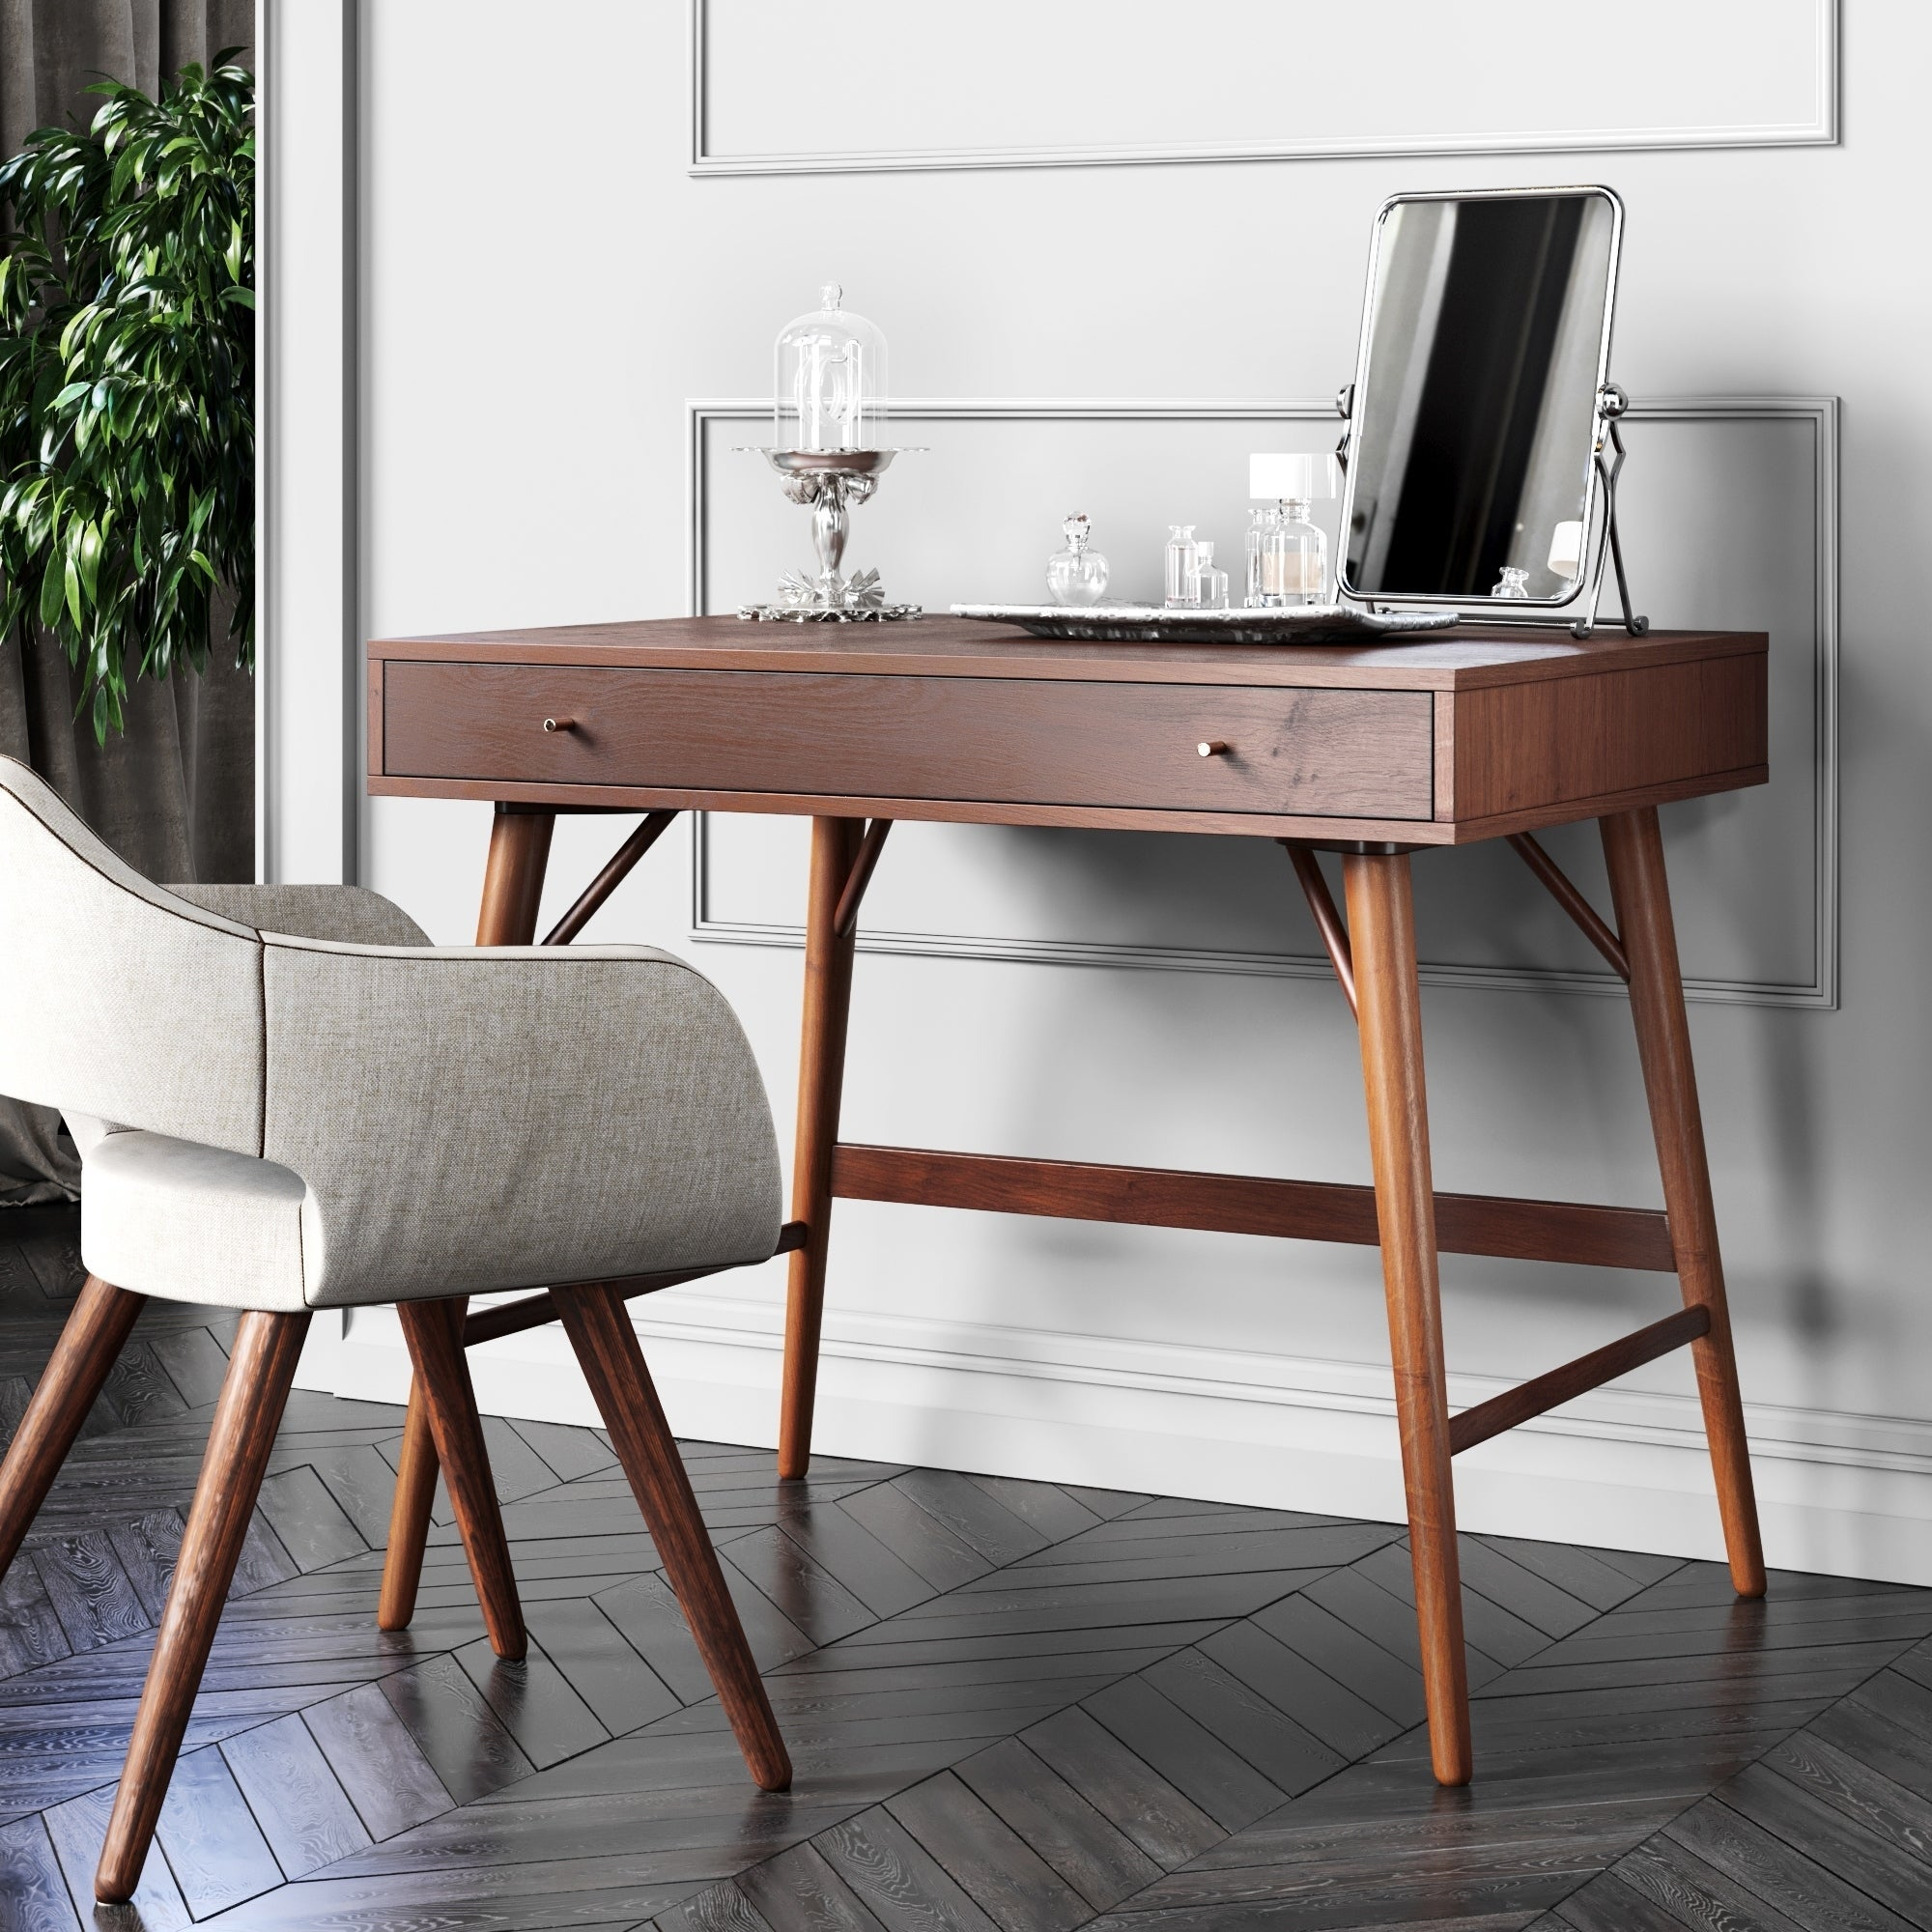 Best Desks For Small Living Spaces Homes 2020